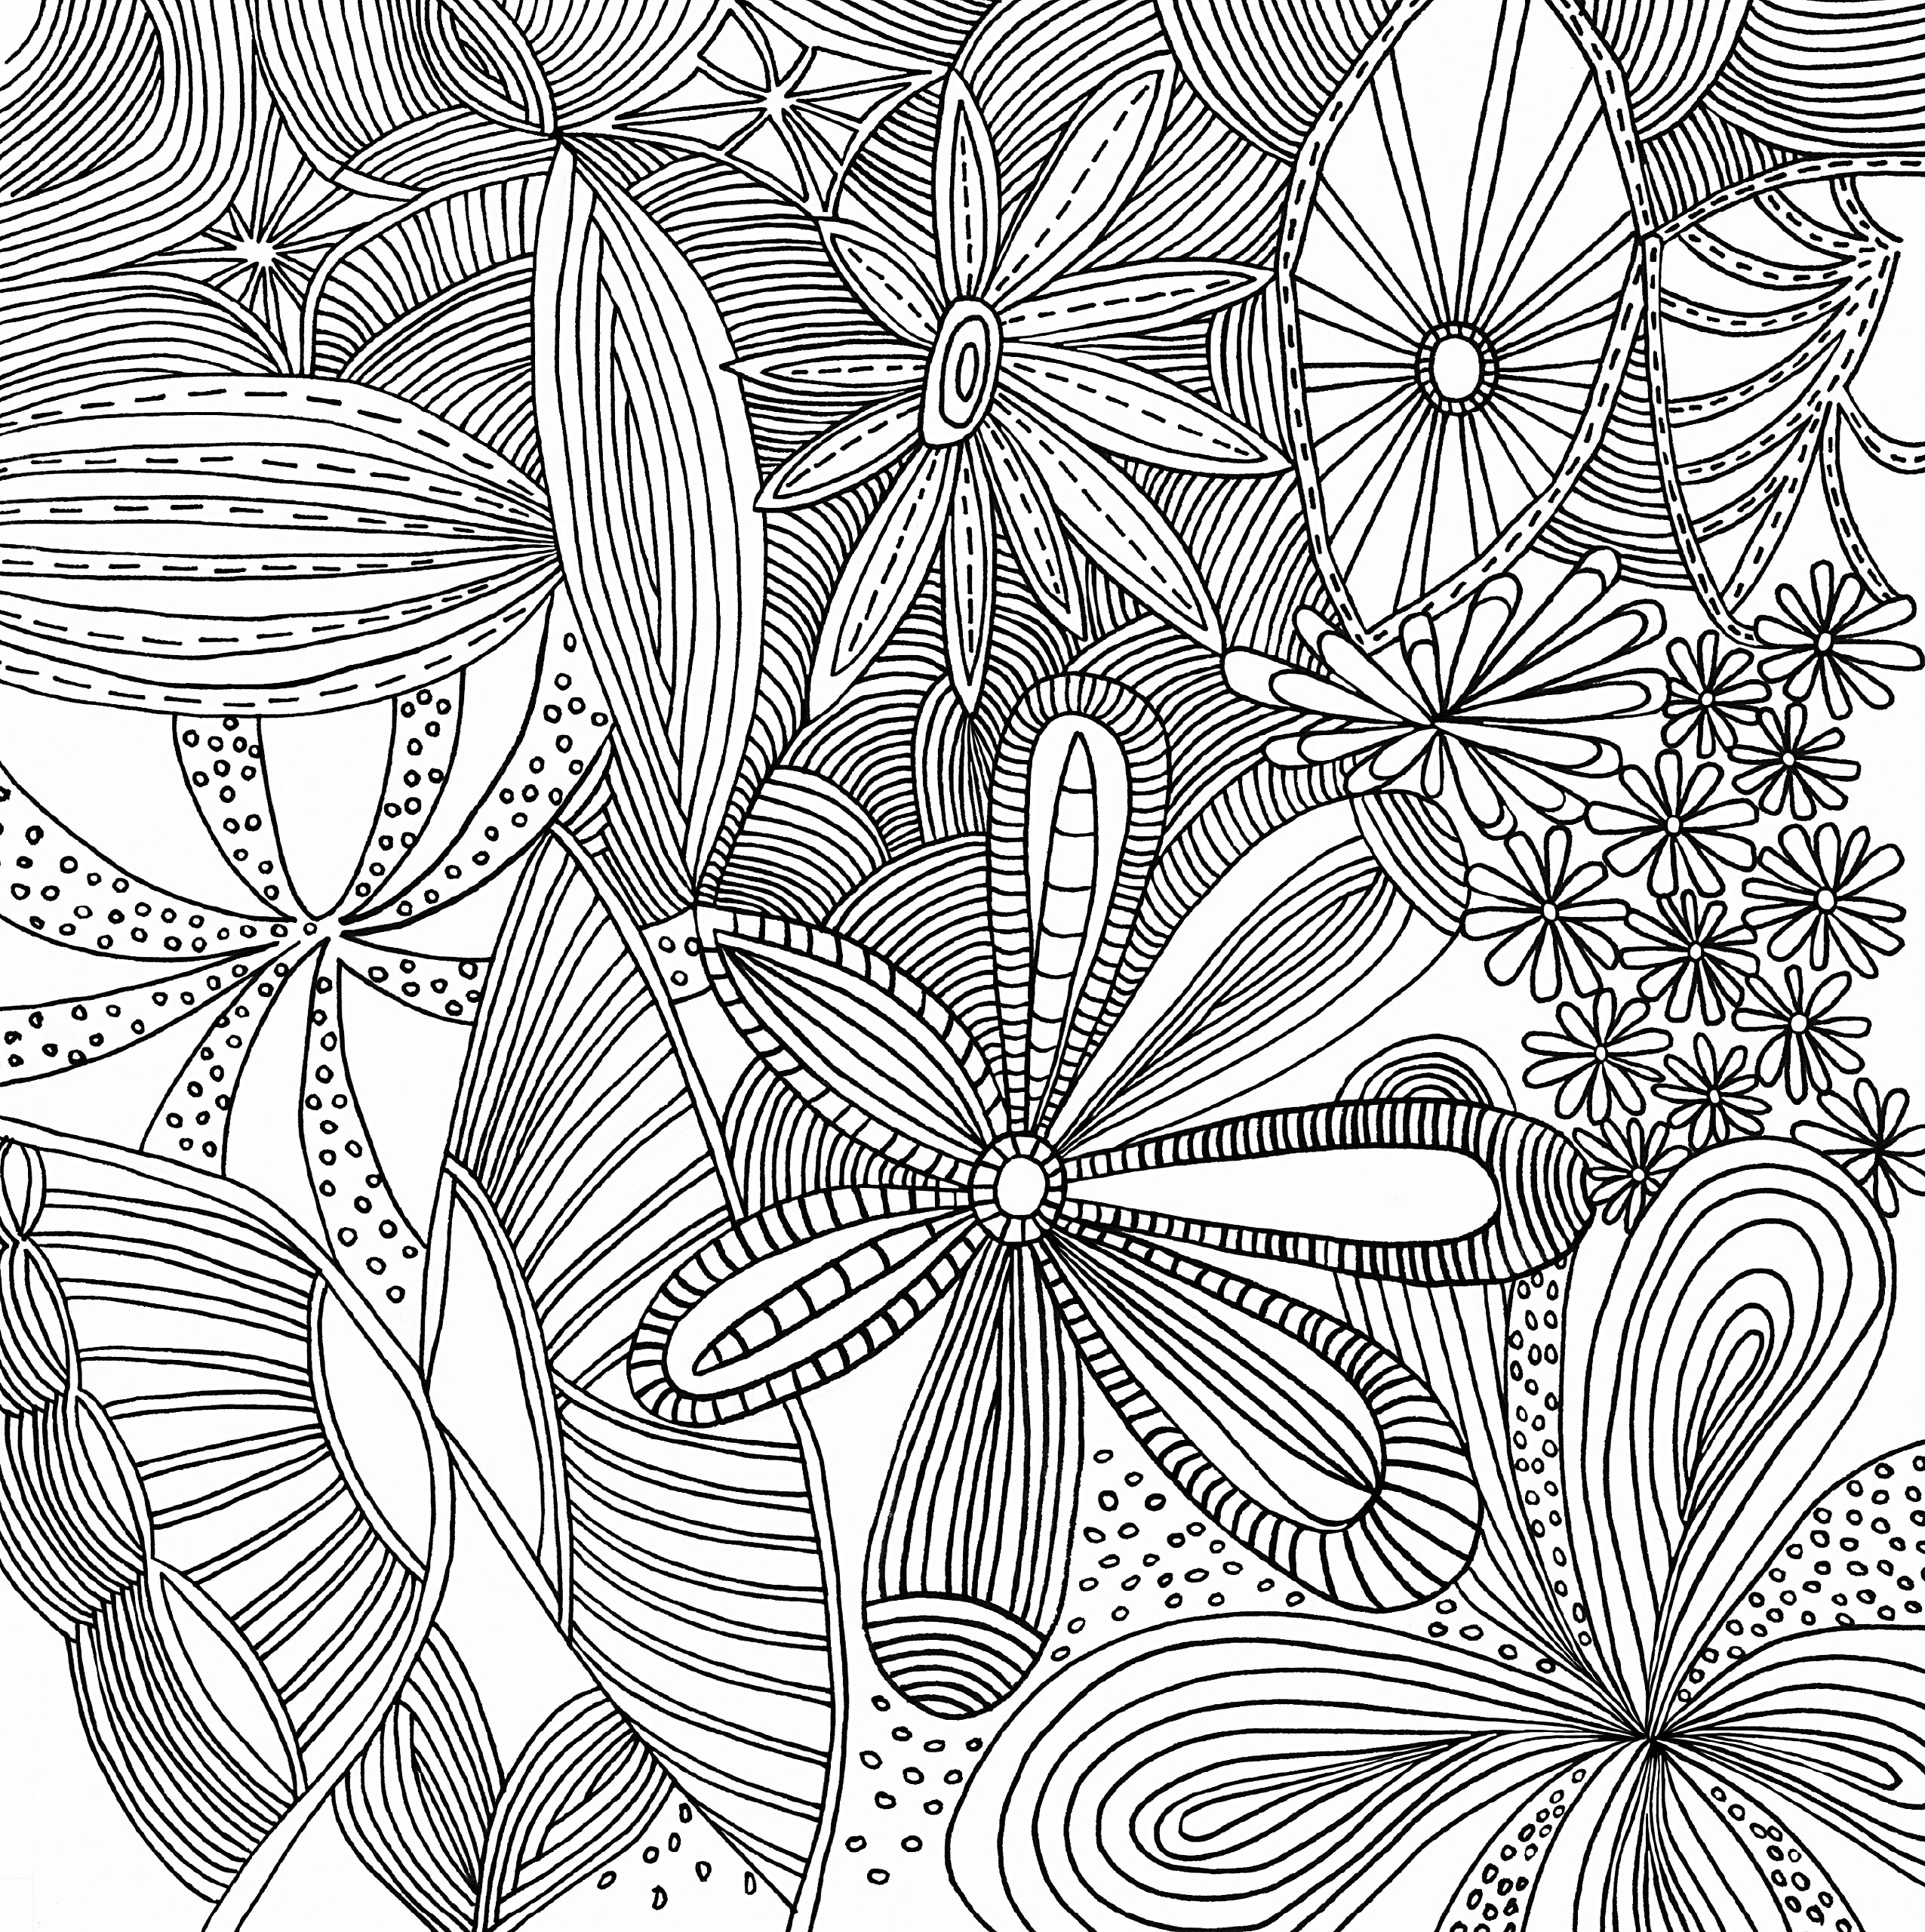 serenity adult coloring book 31 stress relieving designs studio series artists coloring book peter pauper press 9781441320070 amazoncom books - Pattern Coloring Books